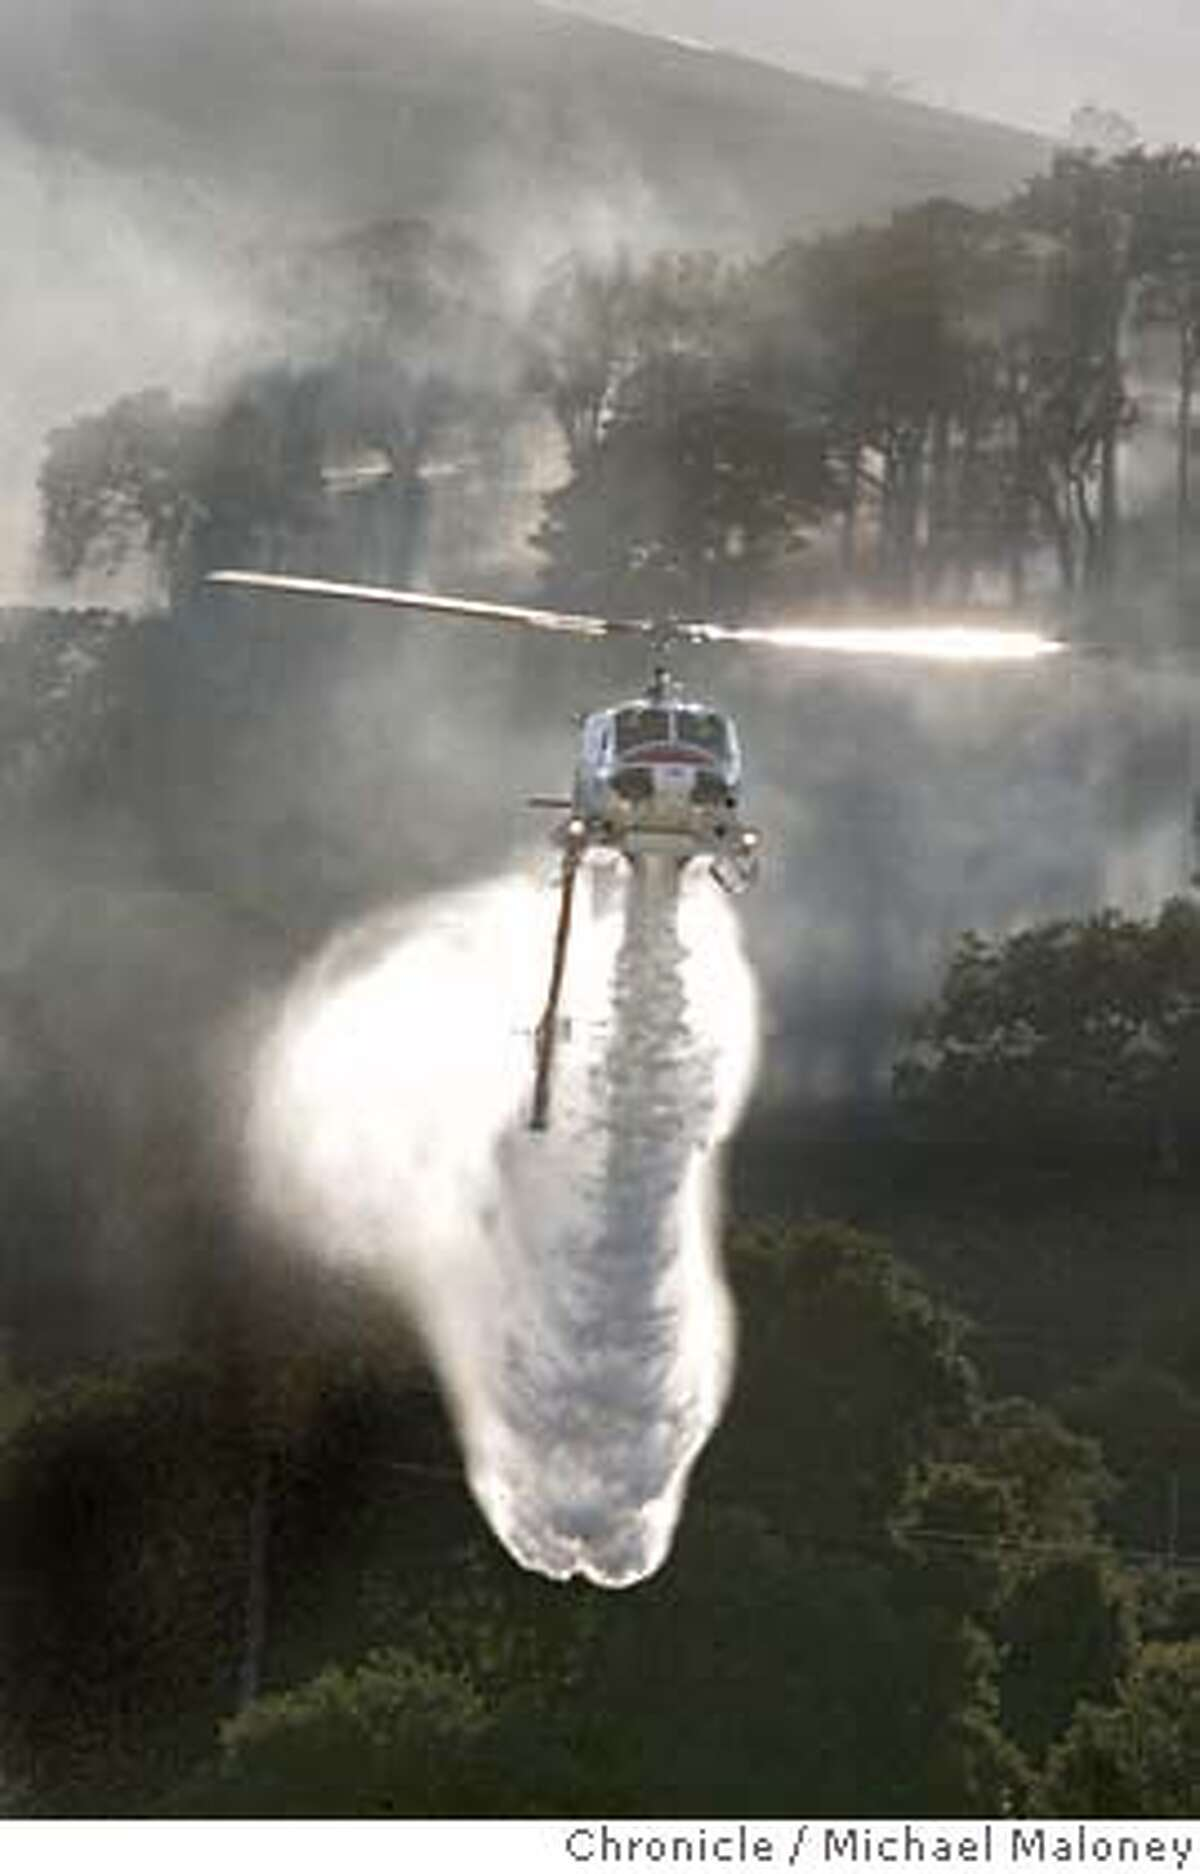 A Cal Fire Helicopter drops water on a fire in the hills near Stanford. Helicopters dropped water Monday June 25, 2007 on a 130-acre brush fire in the hills west of Palo Alto. The three-alarm blaze was reported about 4:40 p.m. between Stanford University and Interstate 280 and was contained by early evening. Photo by Michael Maloney / San Francisco Chronicle ***